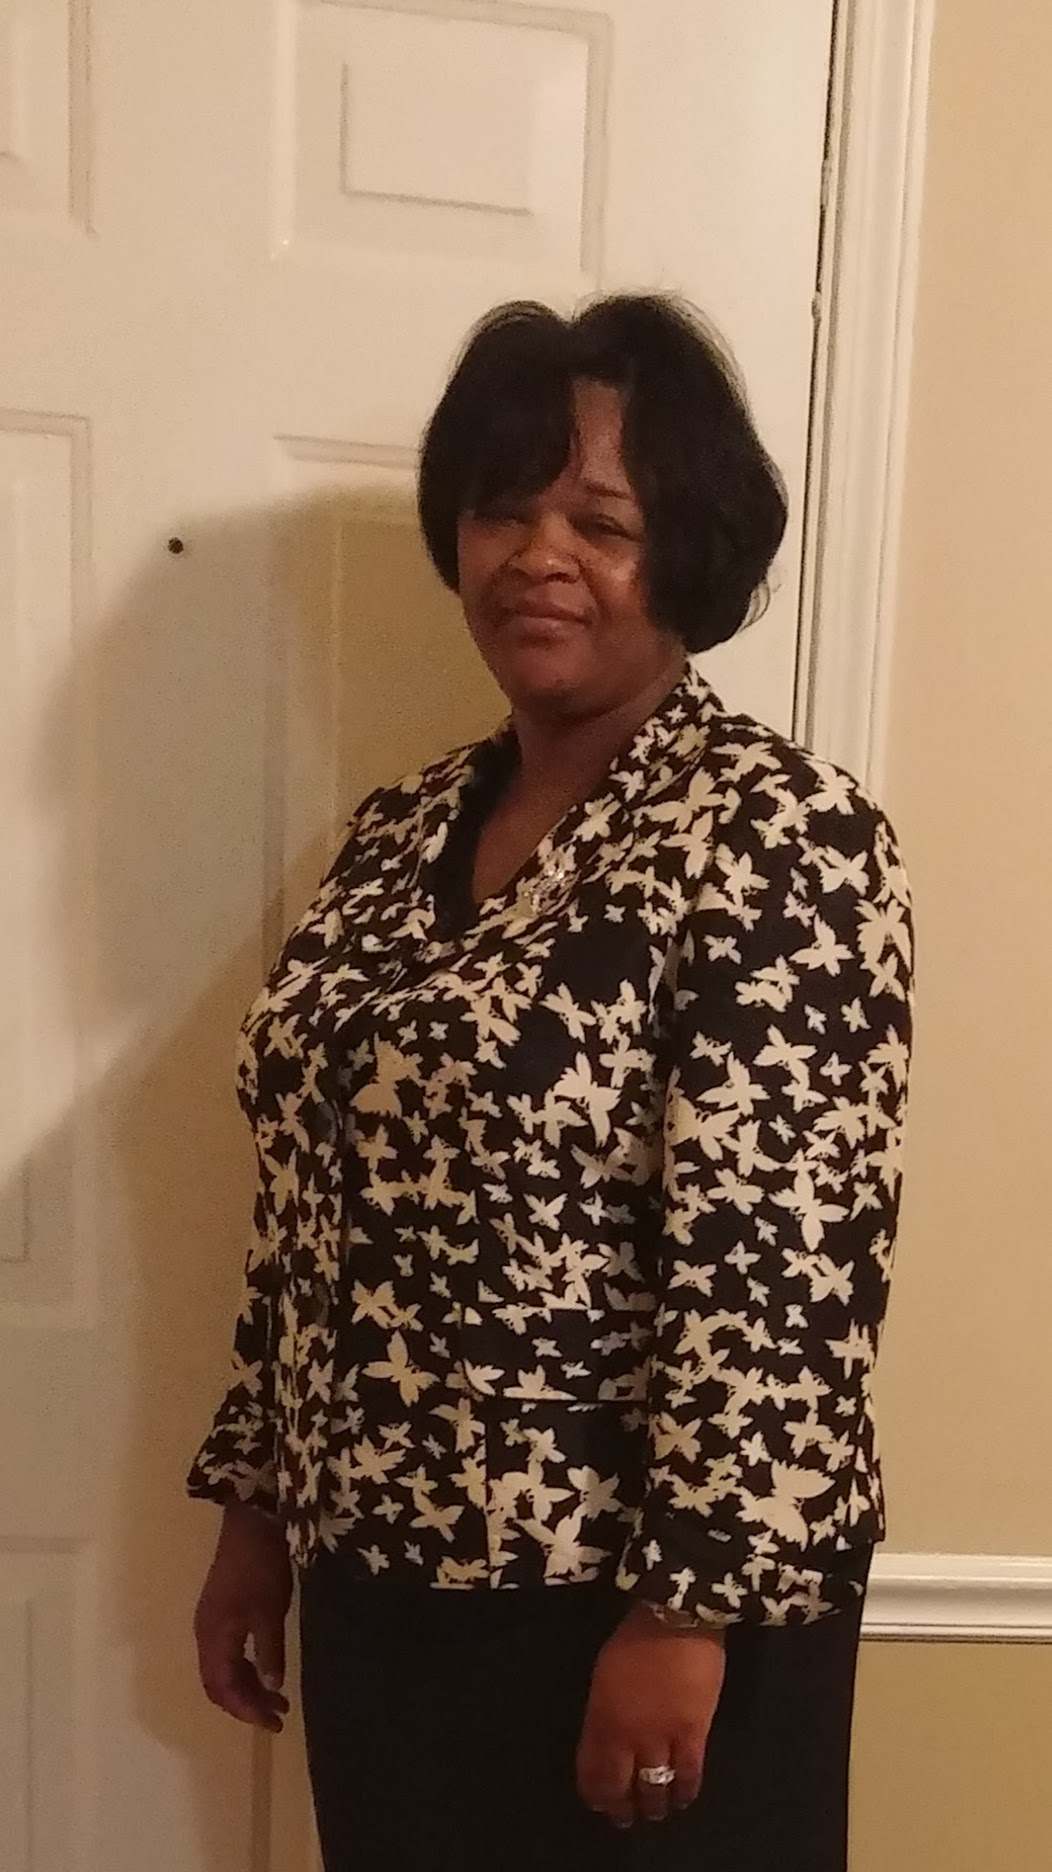 Tammie E. Ward Honored as a Woman of the Month for August 2020 by P.O.W.E.R. (Professional Organization of Women of Excellence Recognized)